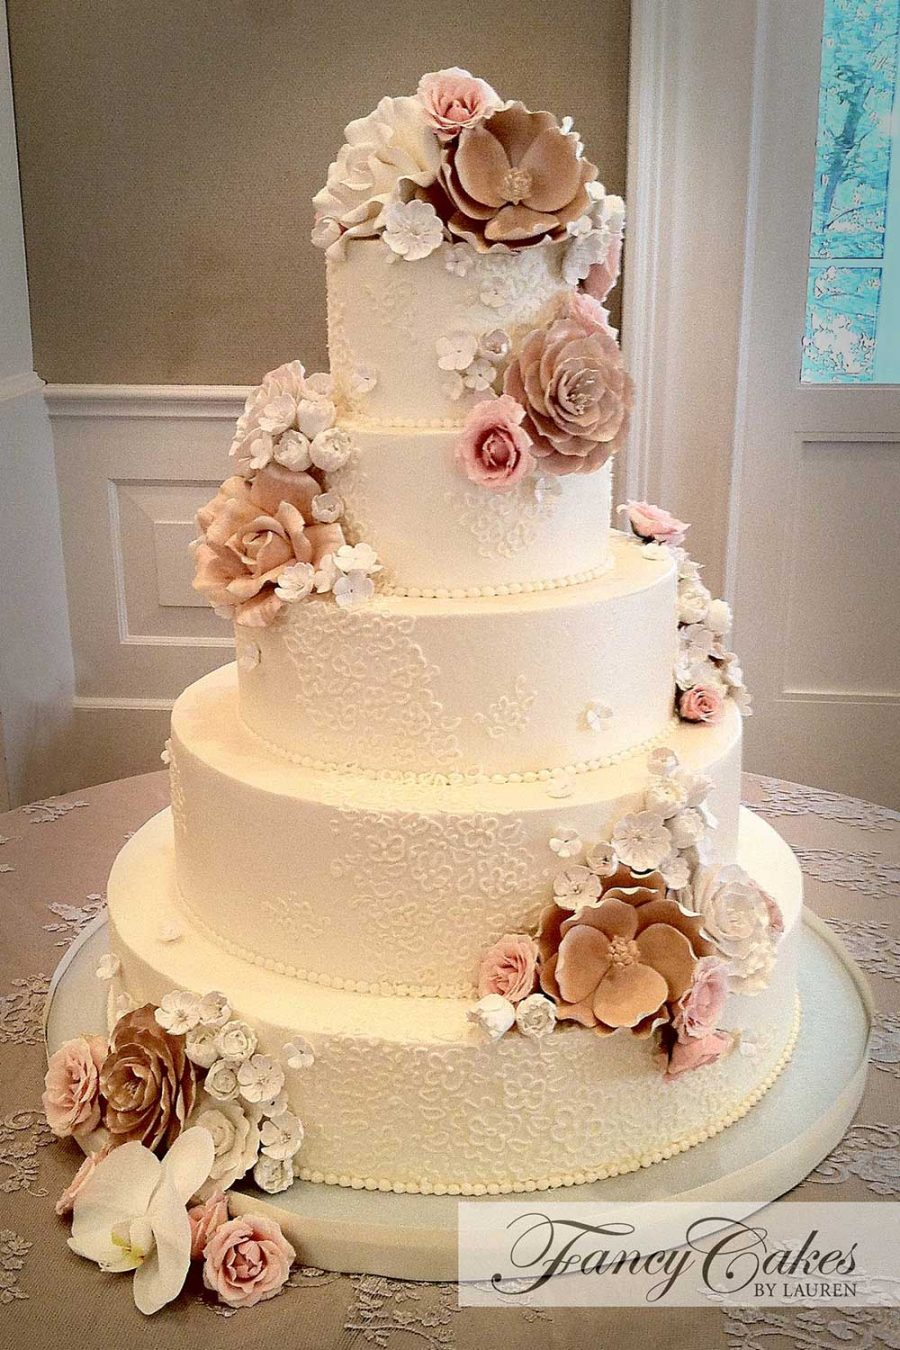 Wedding Cakes - Fancy Cakes by Lauren Kitchens